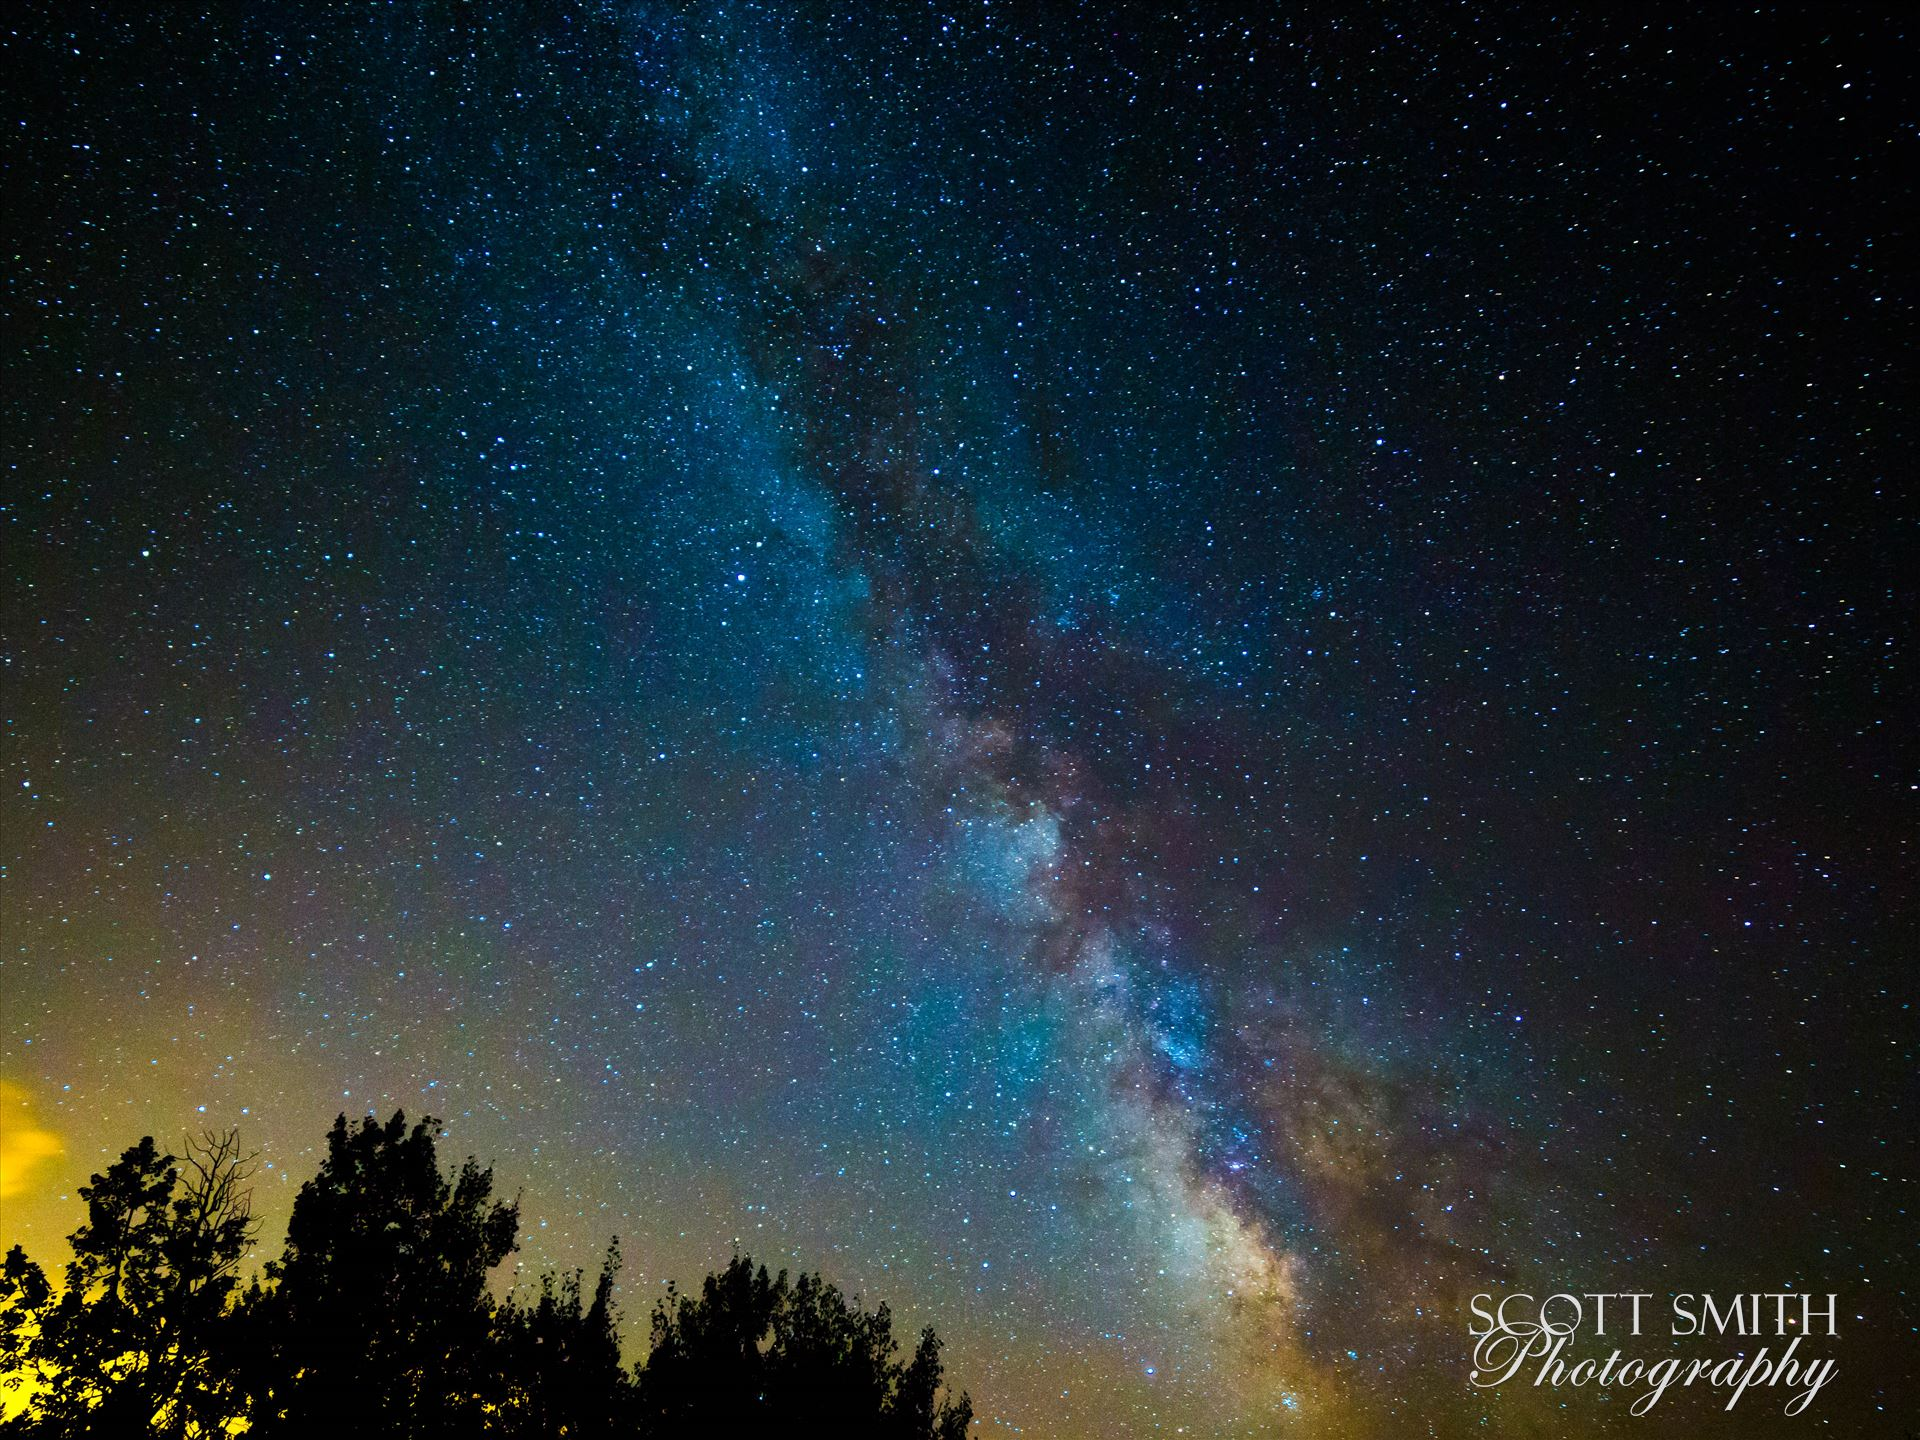 Milky Way from Ward II - The Milky Way during the 2015 Perseid meteor shower. by Scott Smith Photos